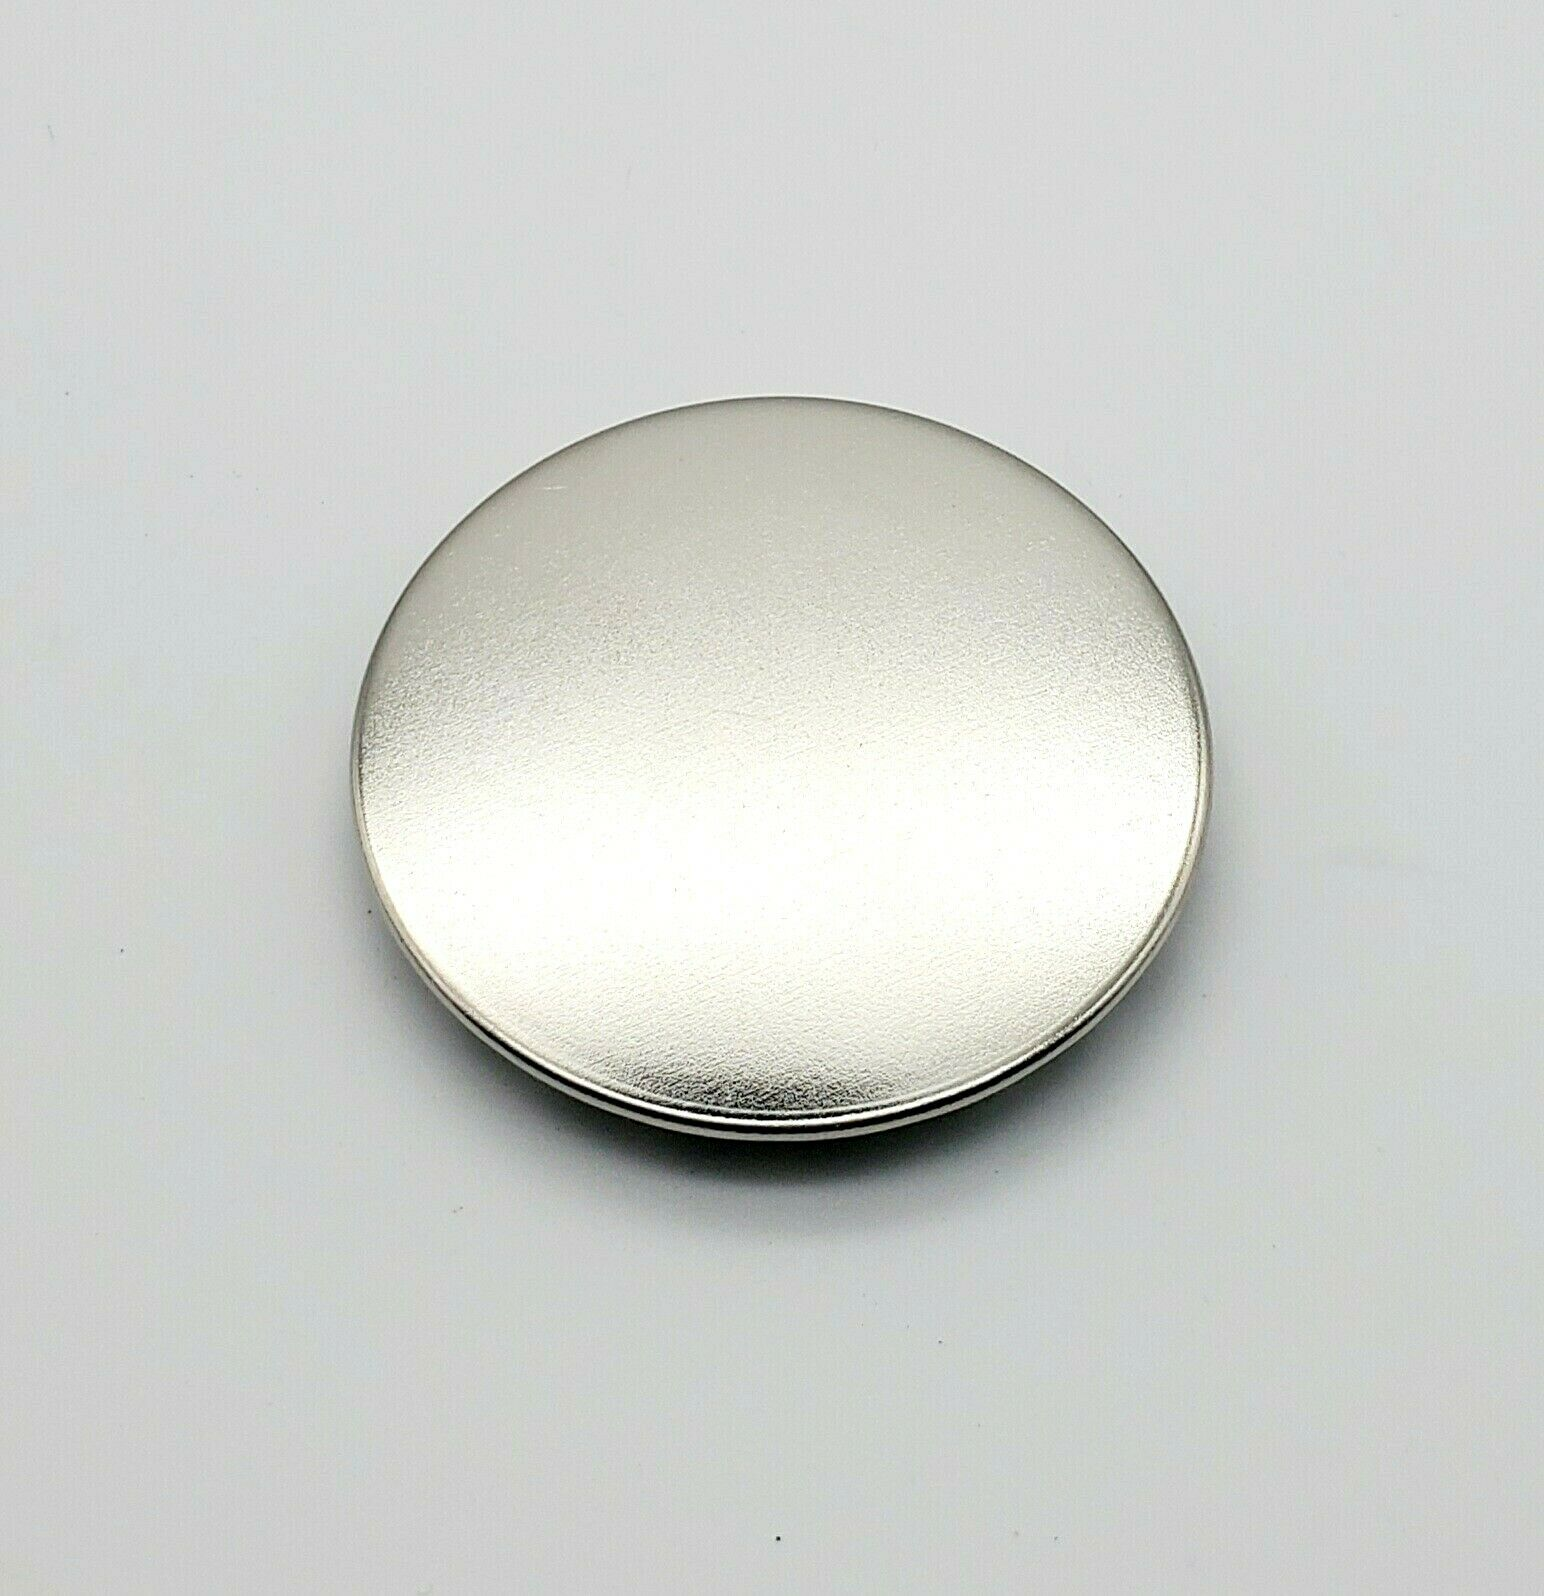 """Bright Nickel Plated Hole Plugs 1 1//4"""" Snap-in Panel Plugs Various Pack Sizes"""